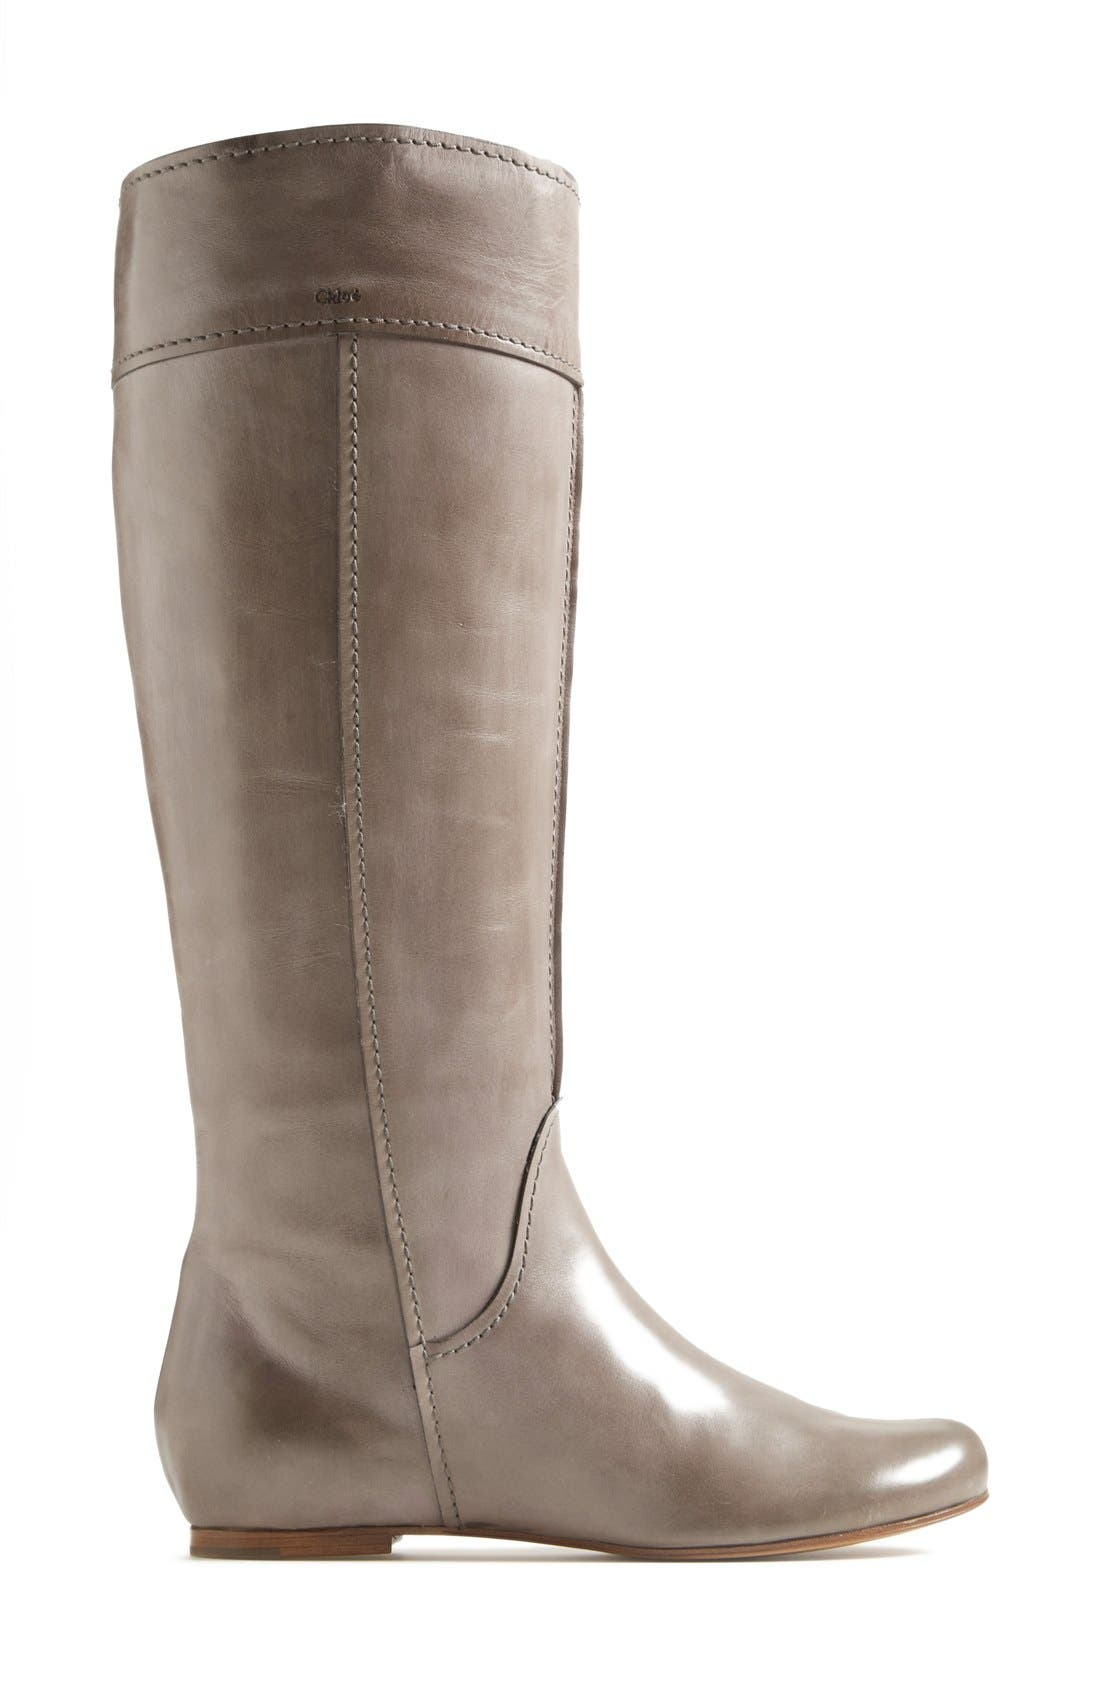 'Heloise' Tall Calfskin Leather Boot,                             Alternate thumbnail 2, color,                             020